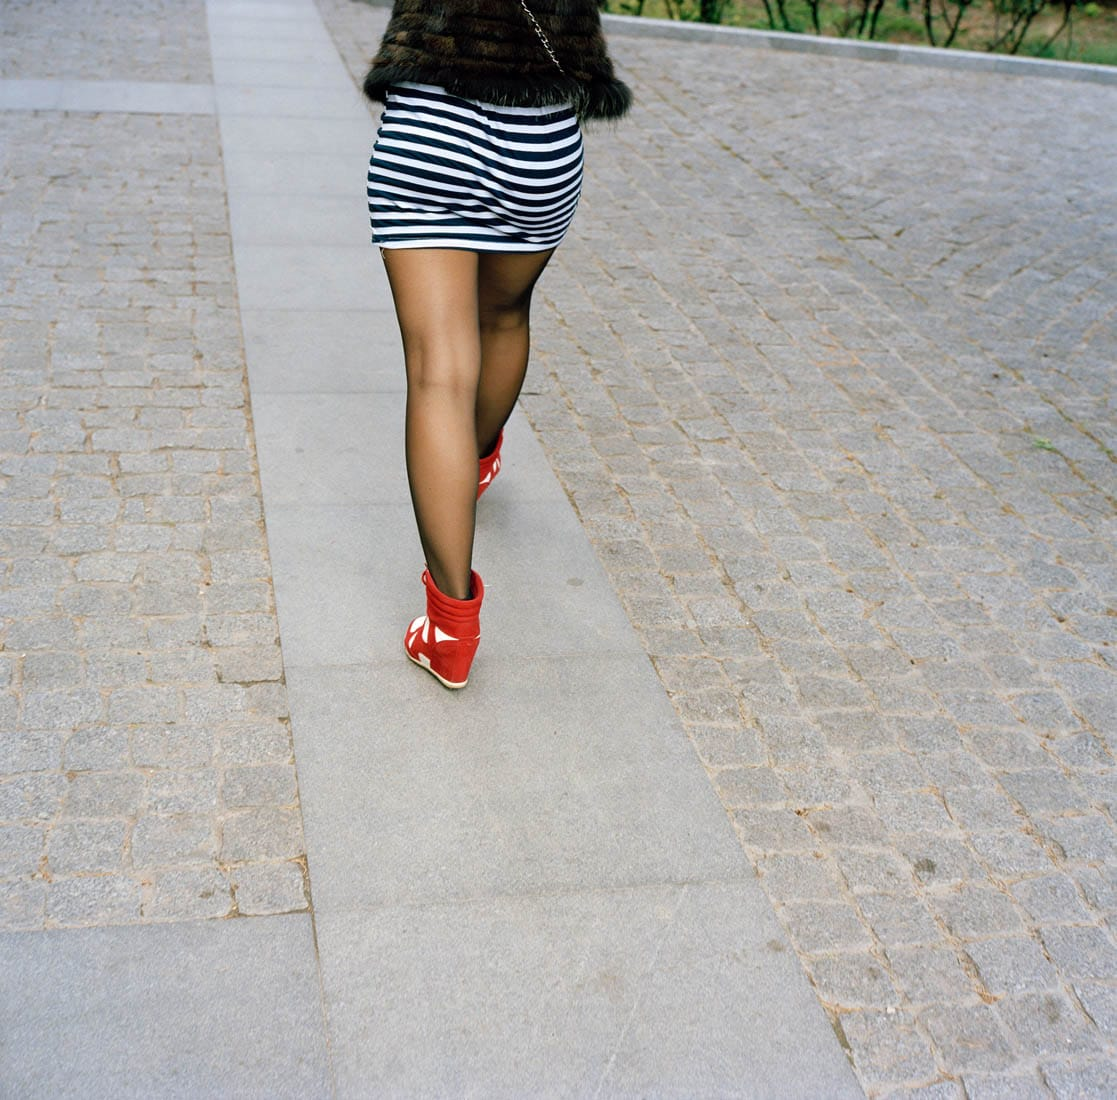 Ukraine, Yalta, 22-09-2013 Beautiful high heeled woman legs in the streets of Yalta PHOTO AND COPYRIGHT ROGER CREMERS